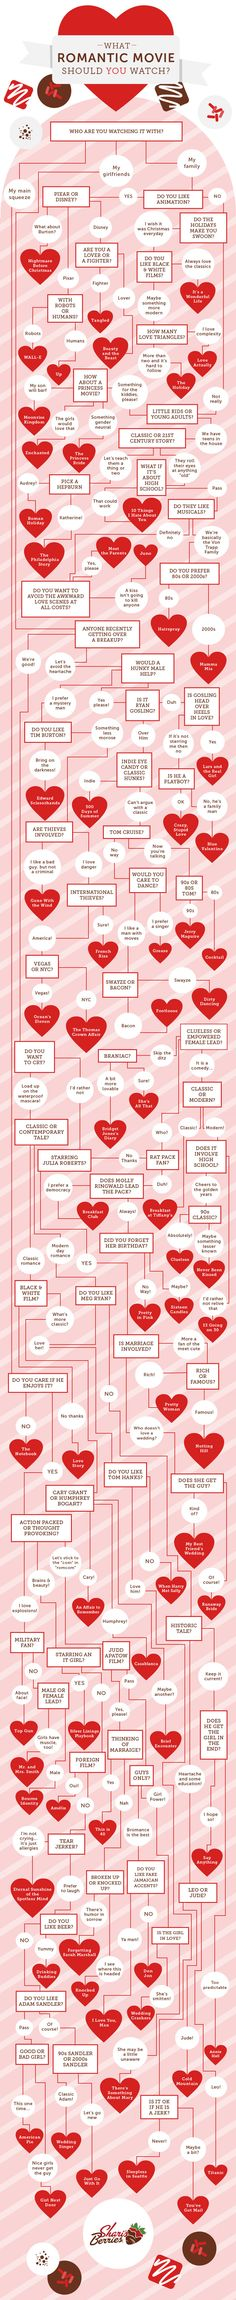 What romantic movie should you watch? flowchart